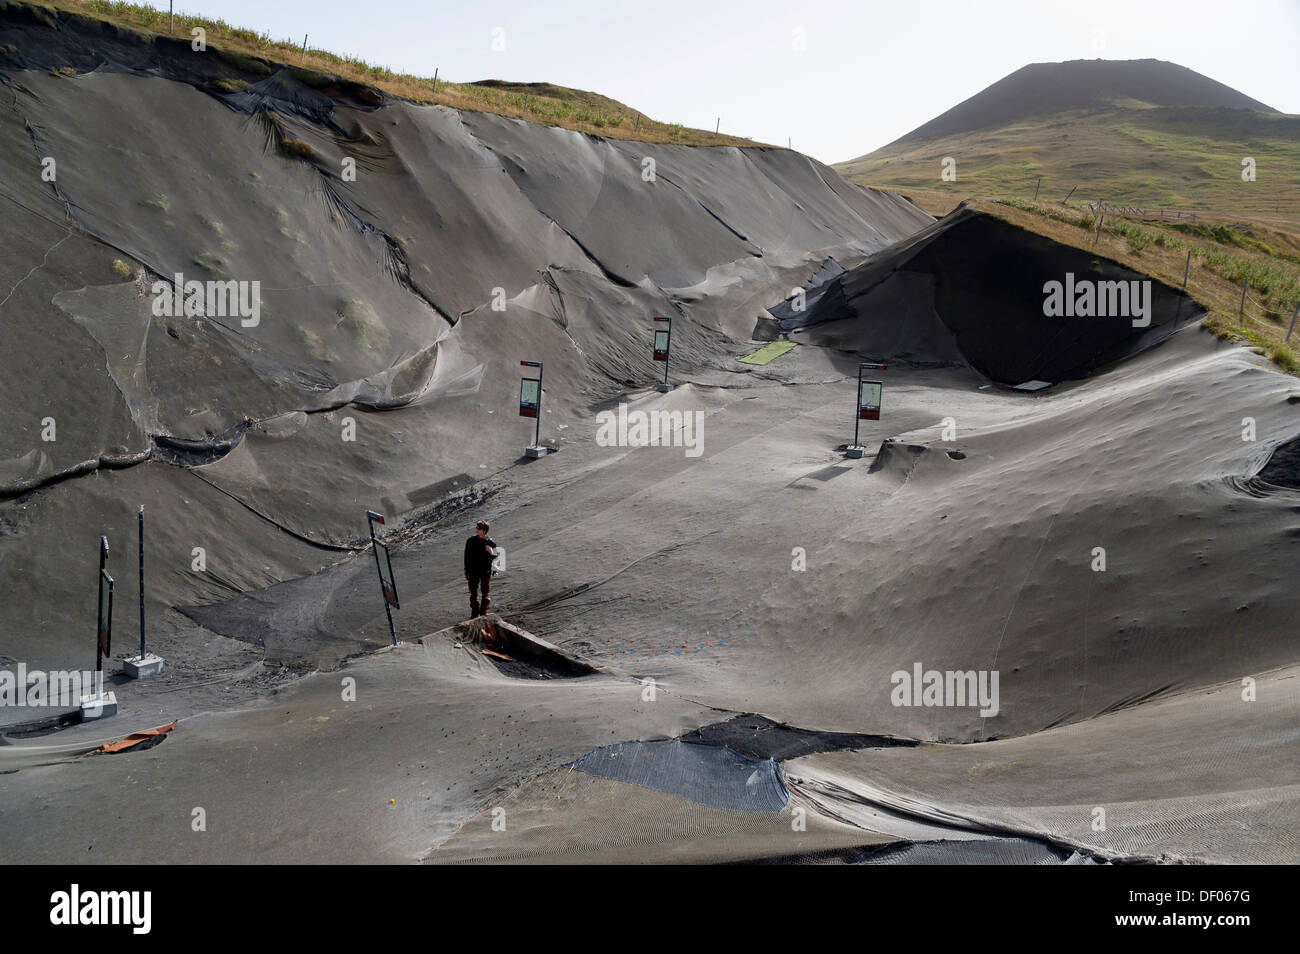 Excavations on a lava field, destroyed houses covered with plastic sheets, Pompeii of the North project, town of Vestmannaeyjar - Stock Image